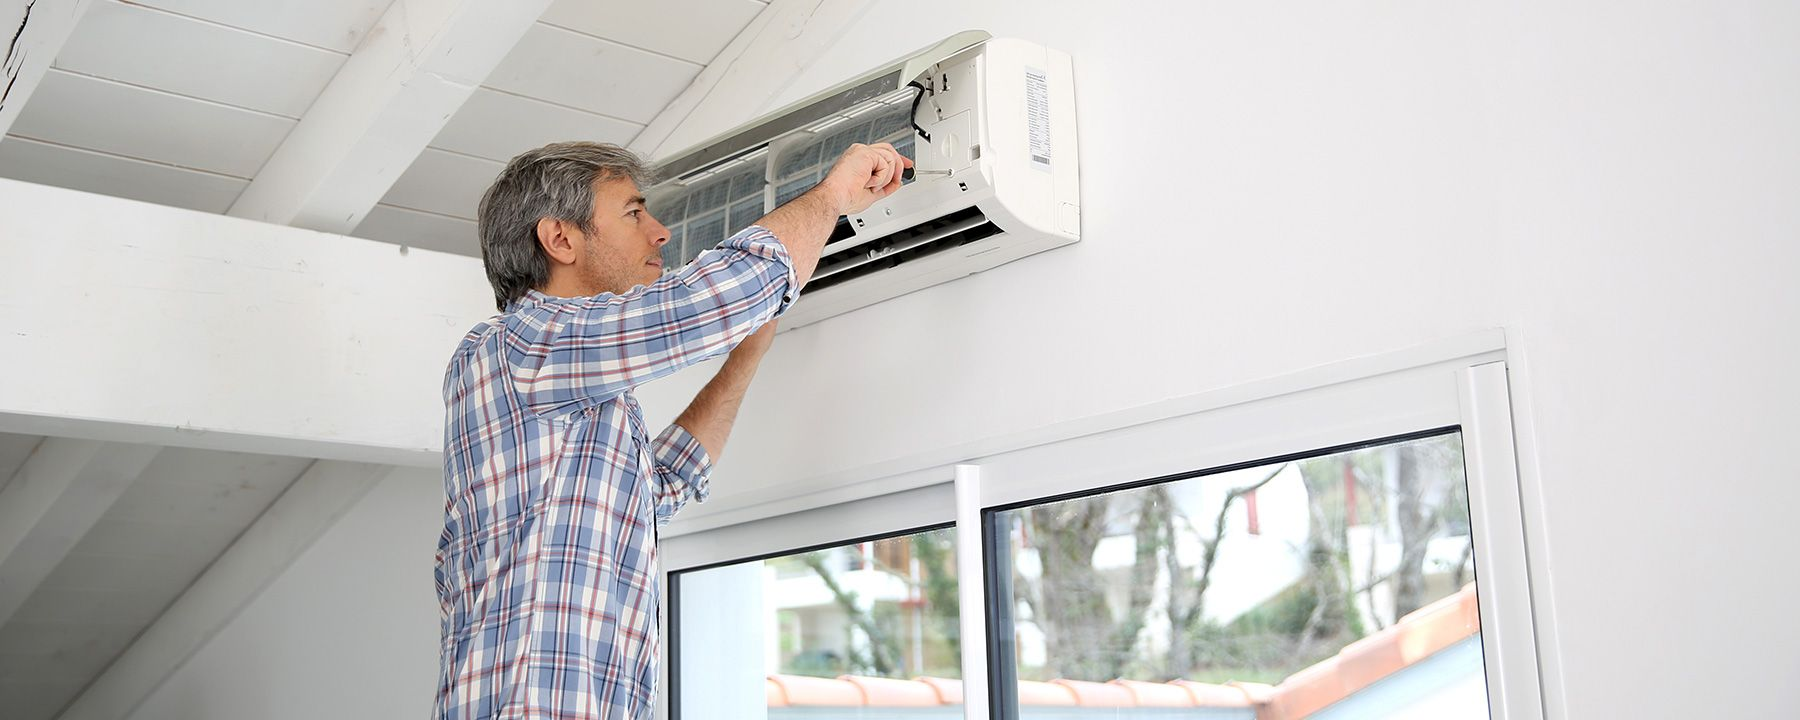 If you are in need of air conditioner repair services